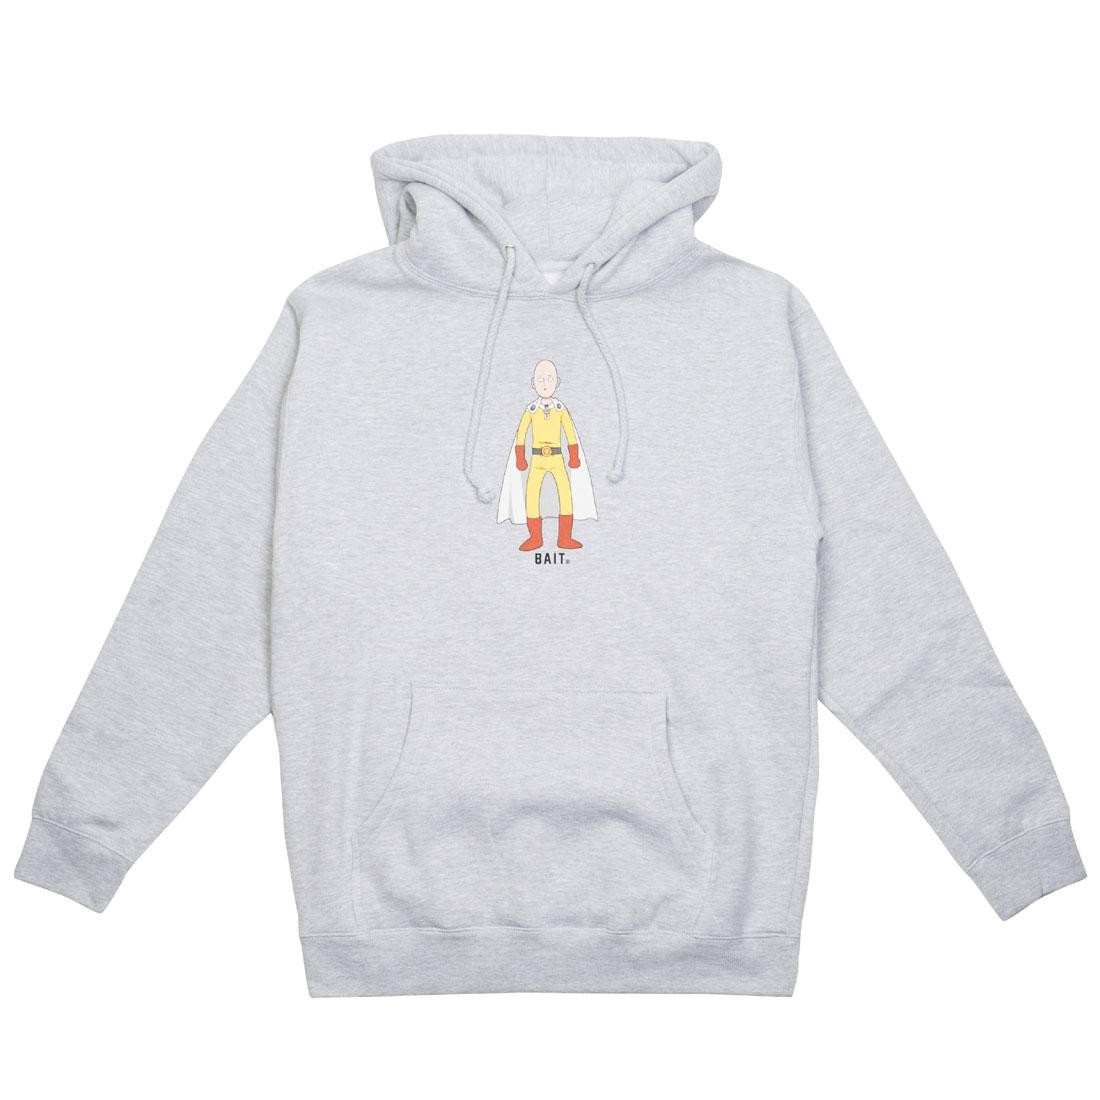 BAIT x One Punch Man Men The Hero Hoody (gray / heather)